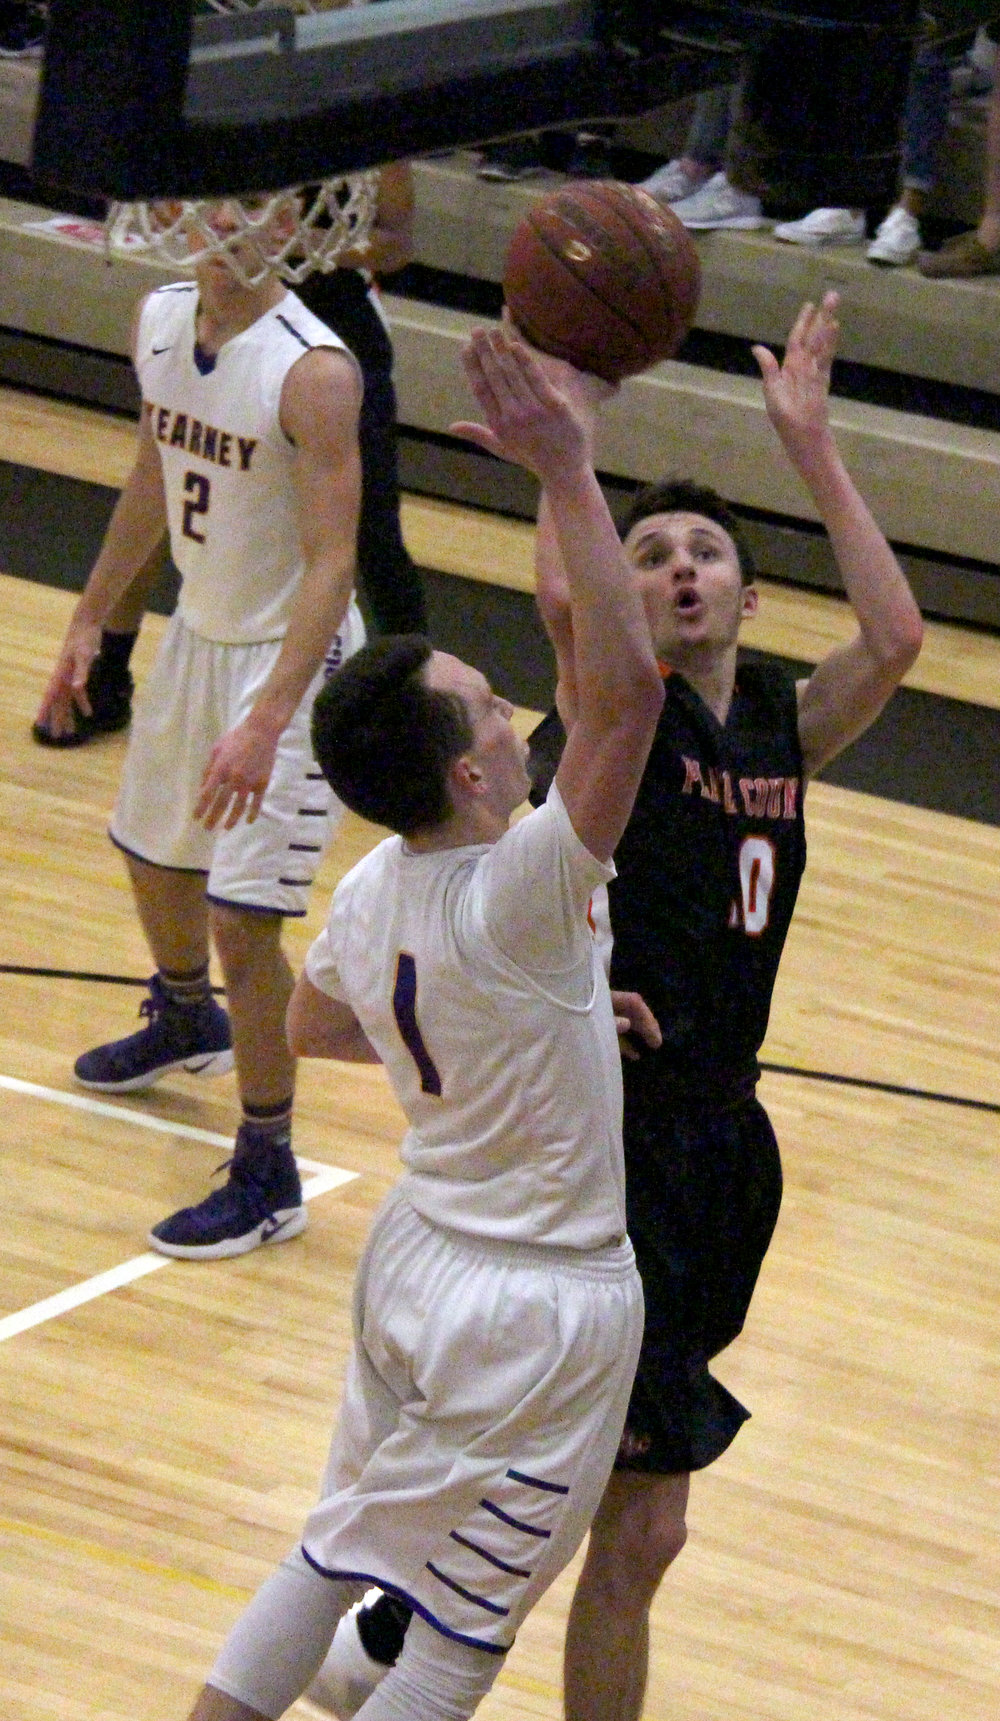 ROSS MARTIN/Citizen photo Platte County senior guard Tanner Newberry, right, goes up for a shot against Kearney senior Dylan Ritz (1) during the Class 4 District 15 title game Saturday, March 4 at Excelsior Springs High School in Excelsior Springs, Mo.